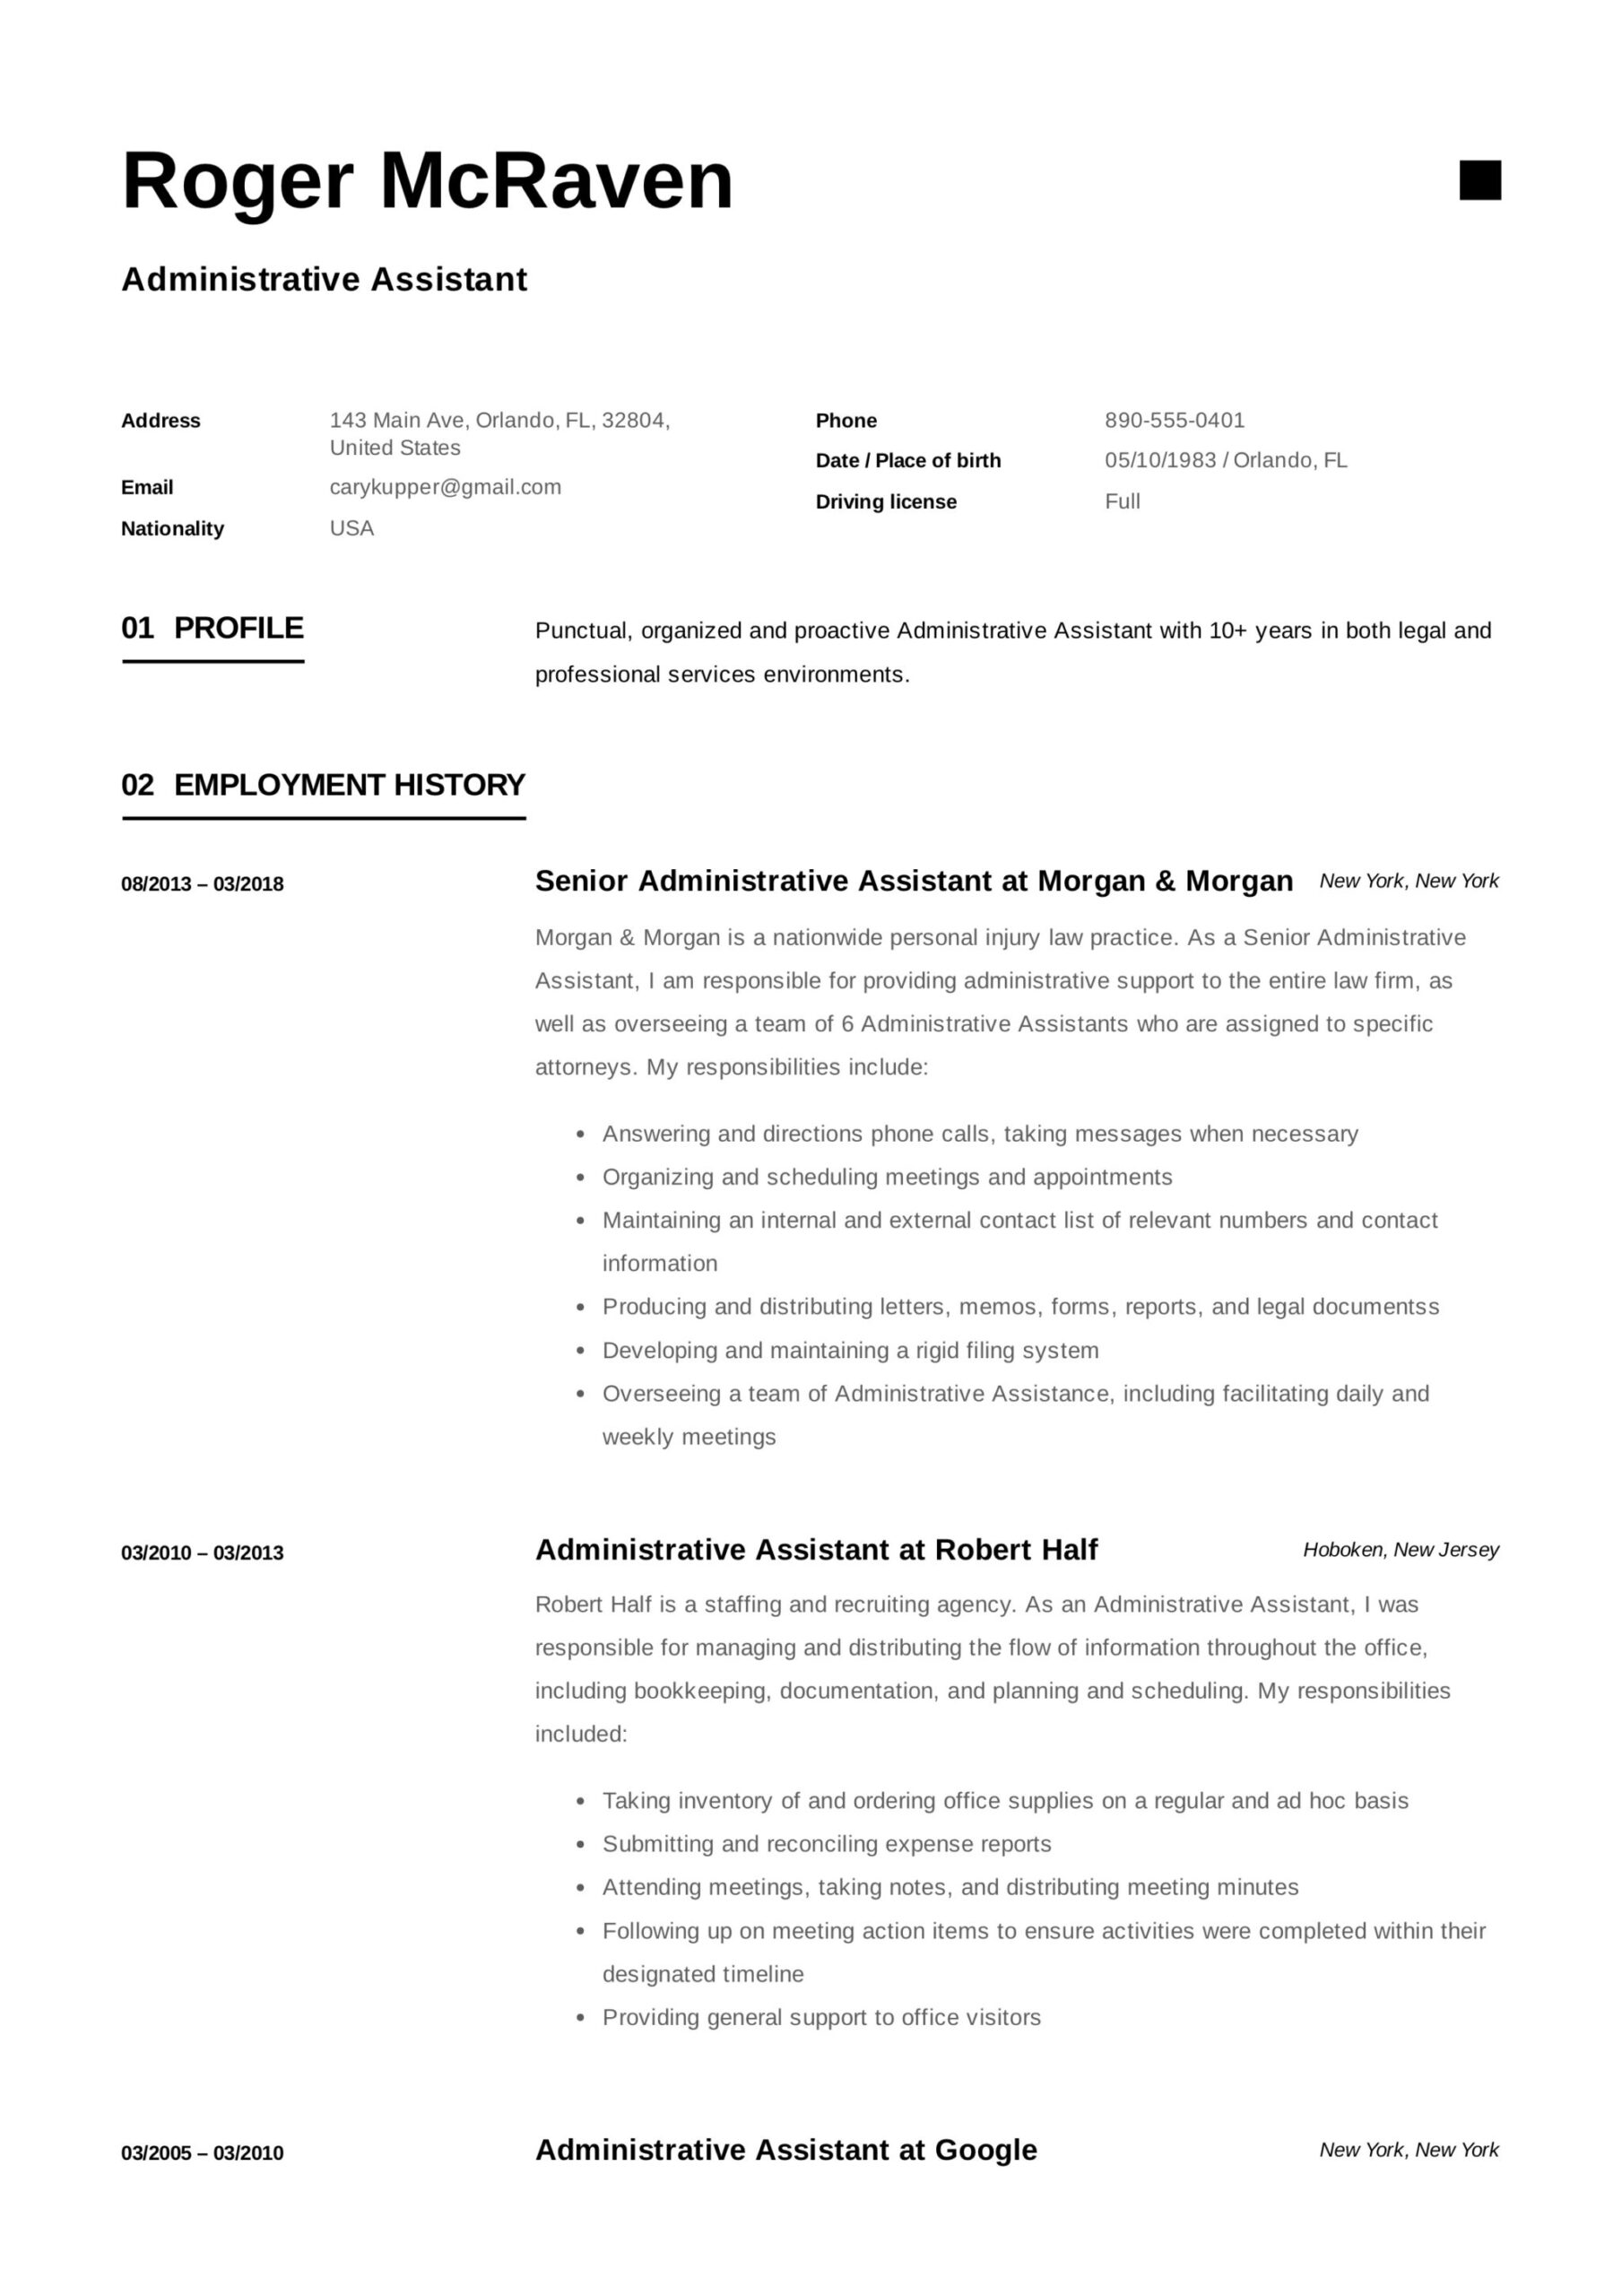 free administrative assistant resumes writing guide pdf resume profile example submit Resume Administrative Assistant Resume Profile